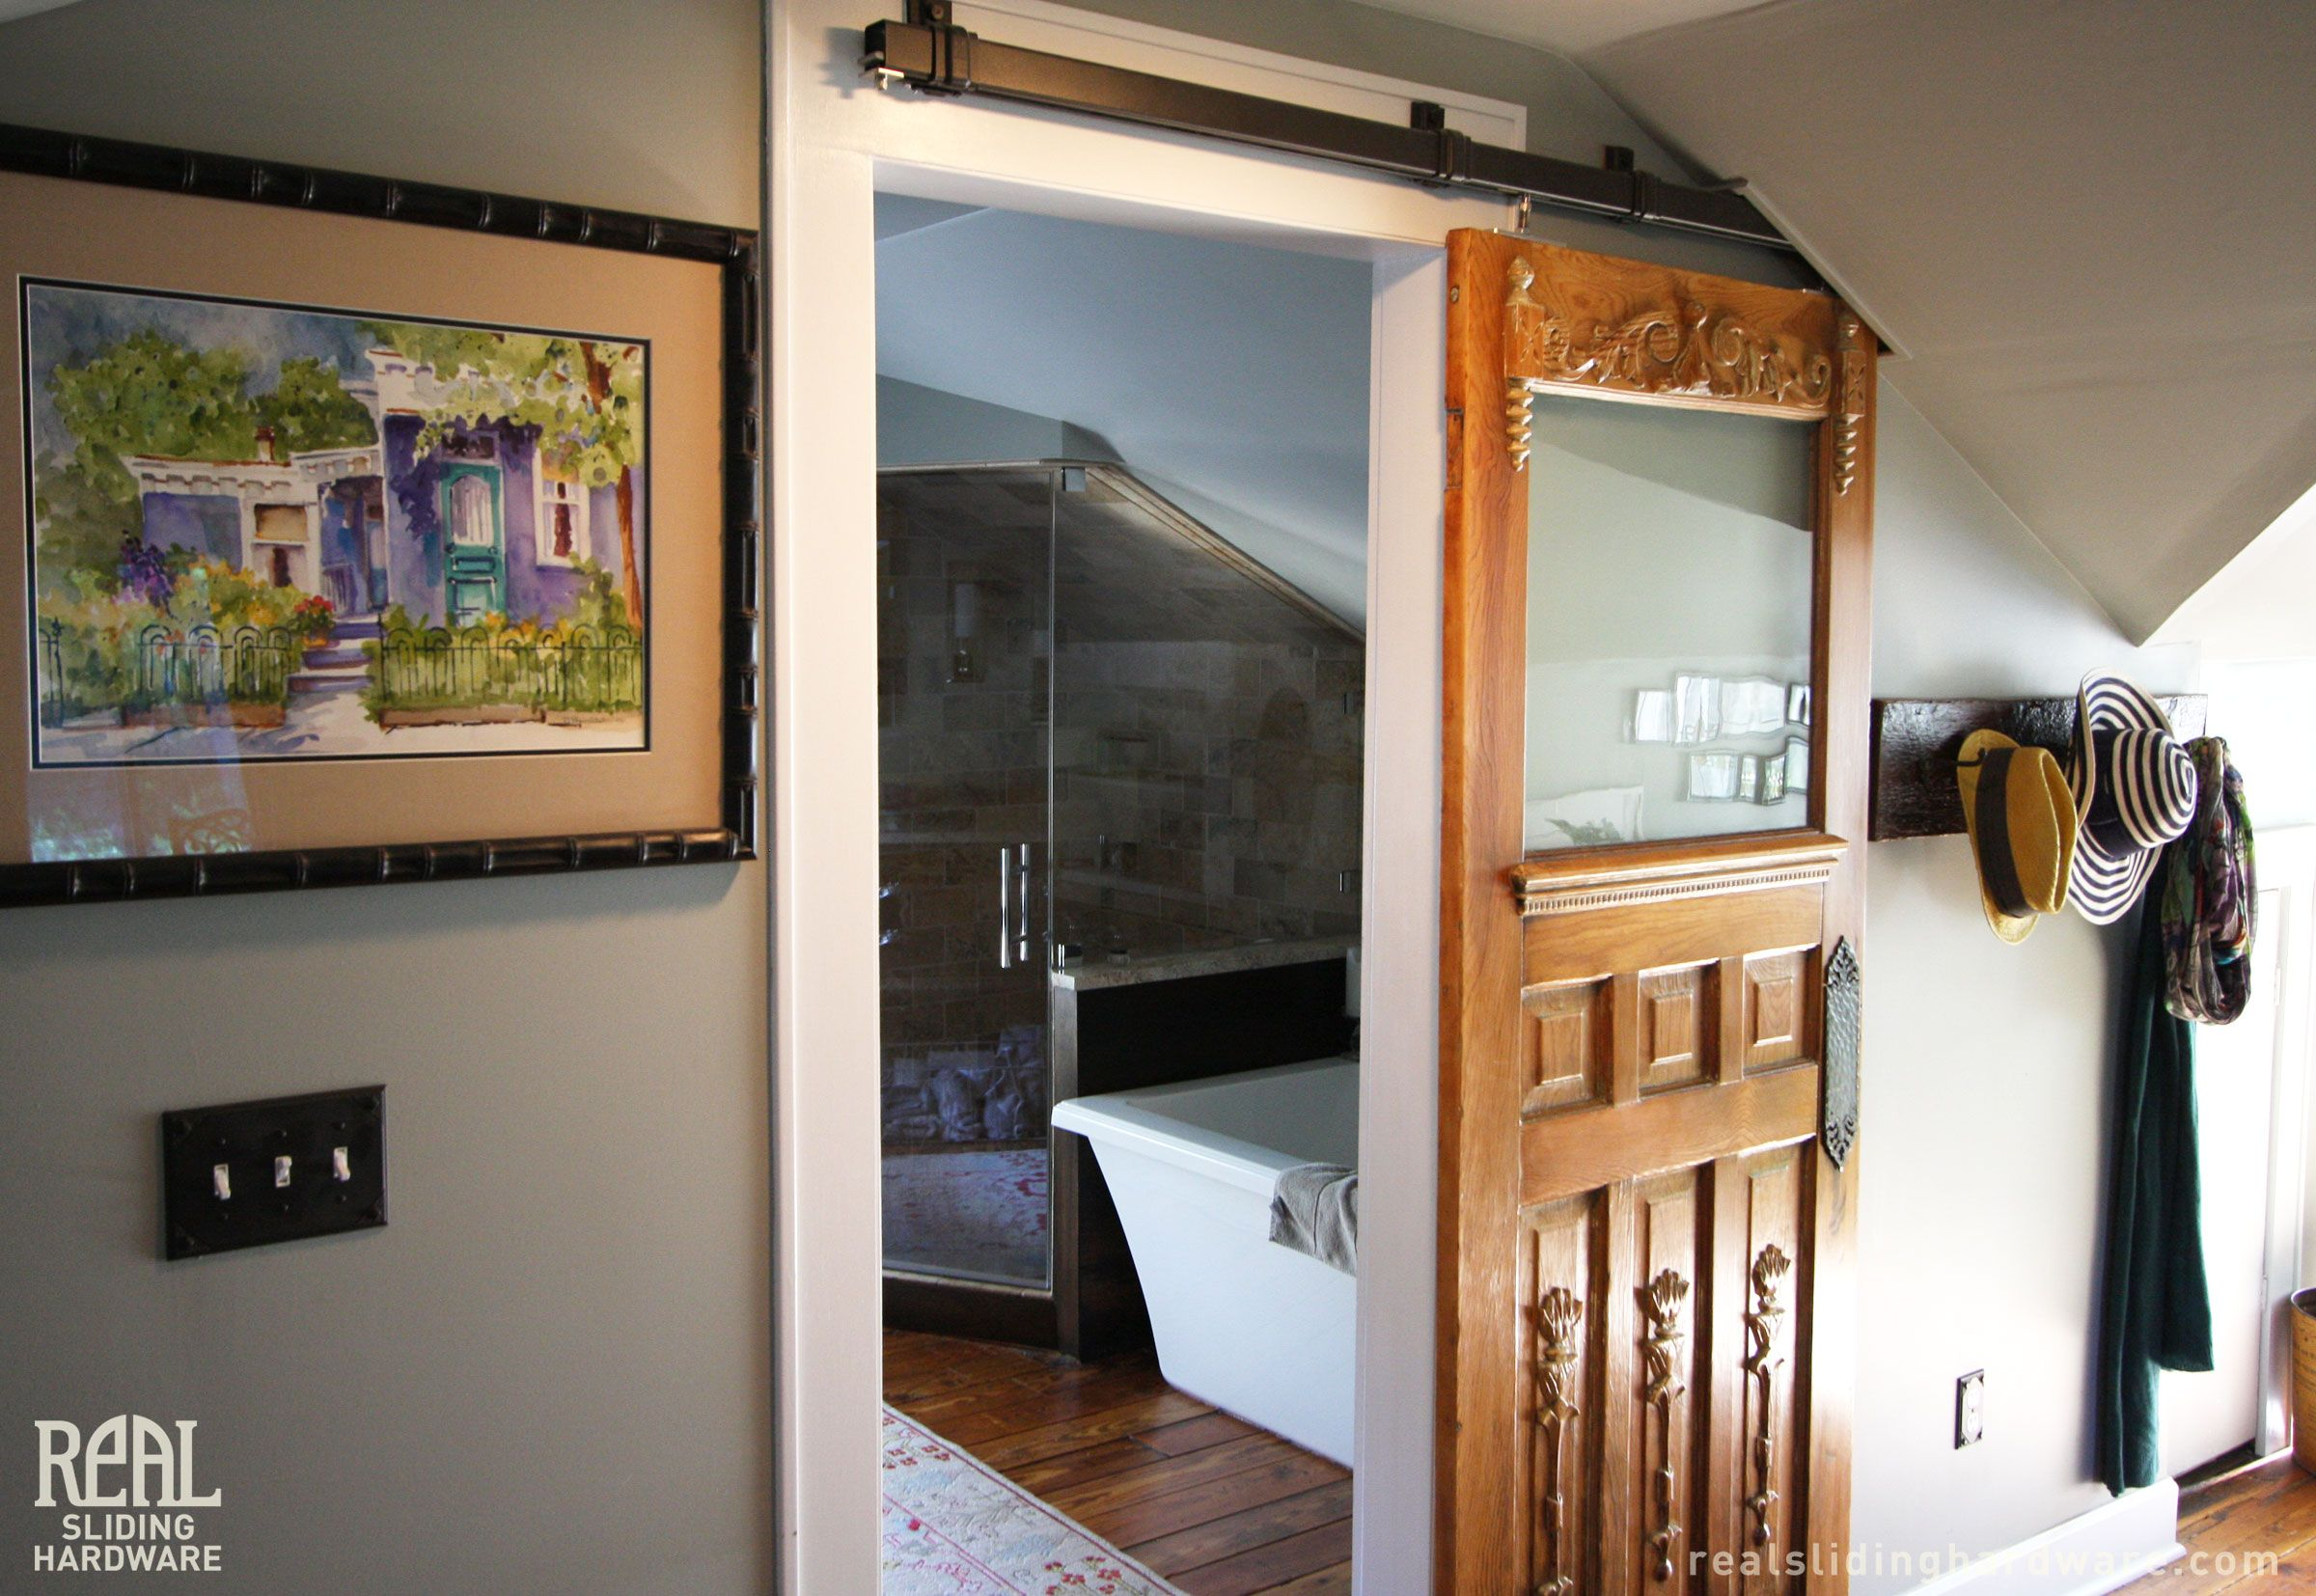 Unique Application Of Sliding Barn Door Hardware In An